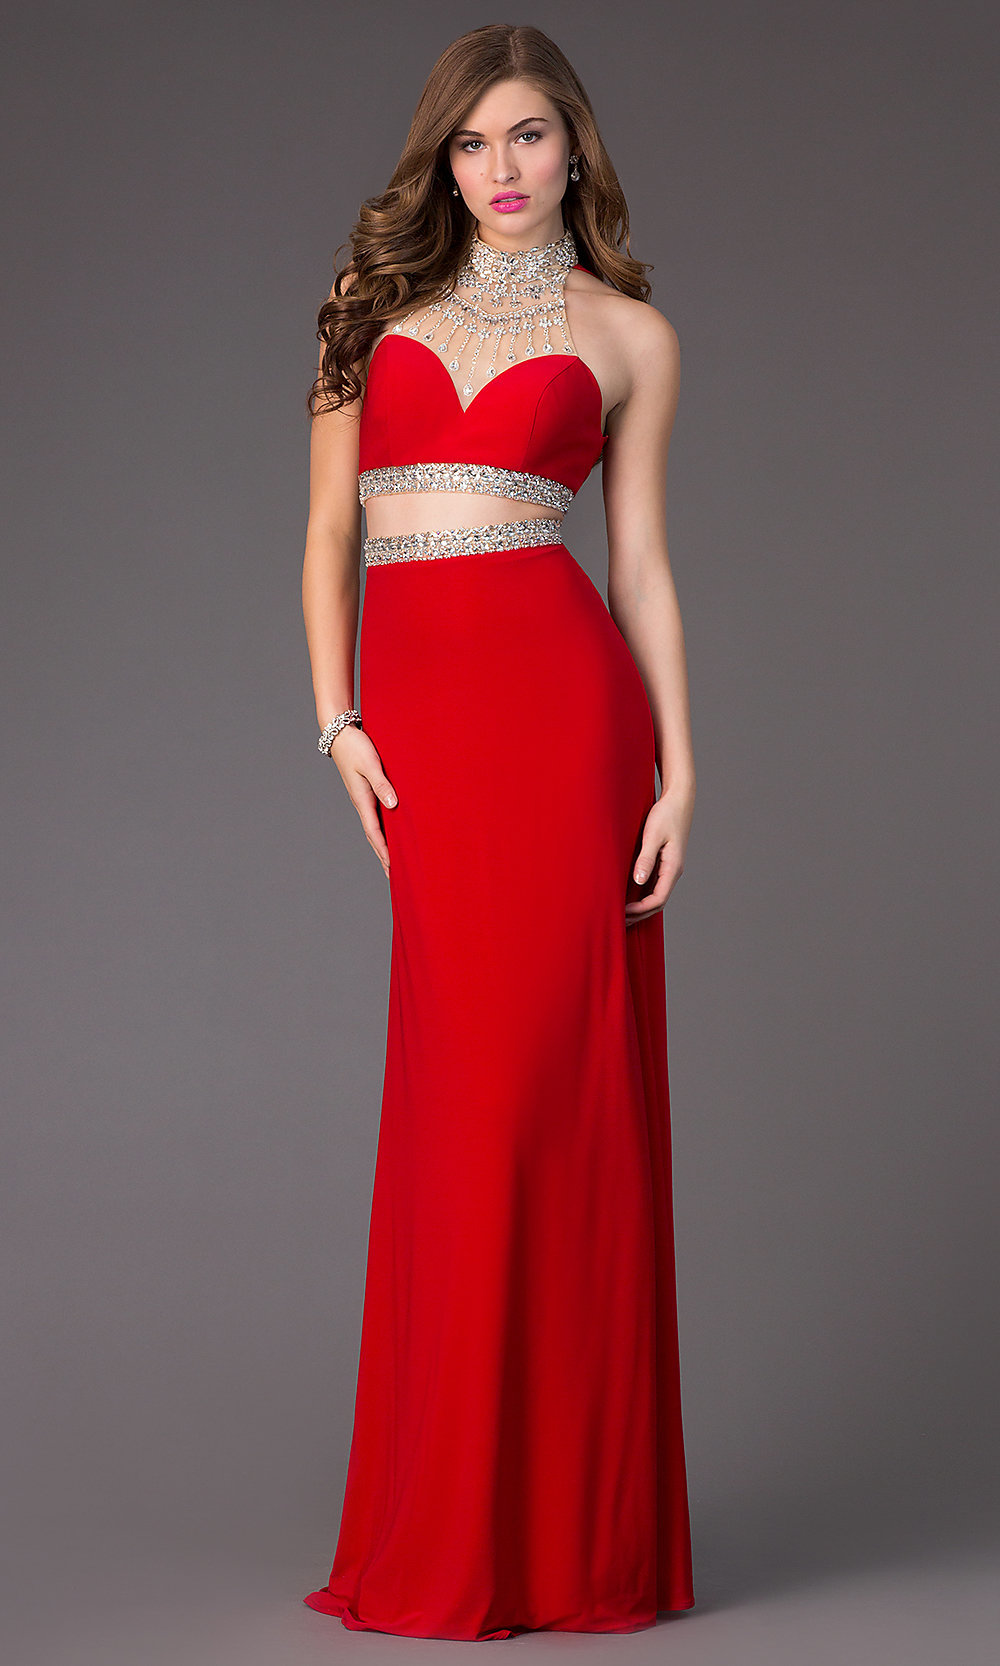 Collection Two Piece Formal Dresses Pictures - Reikian